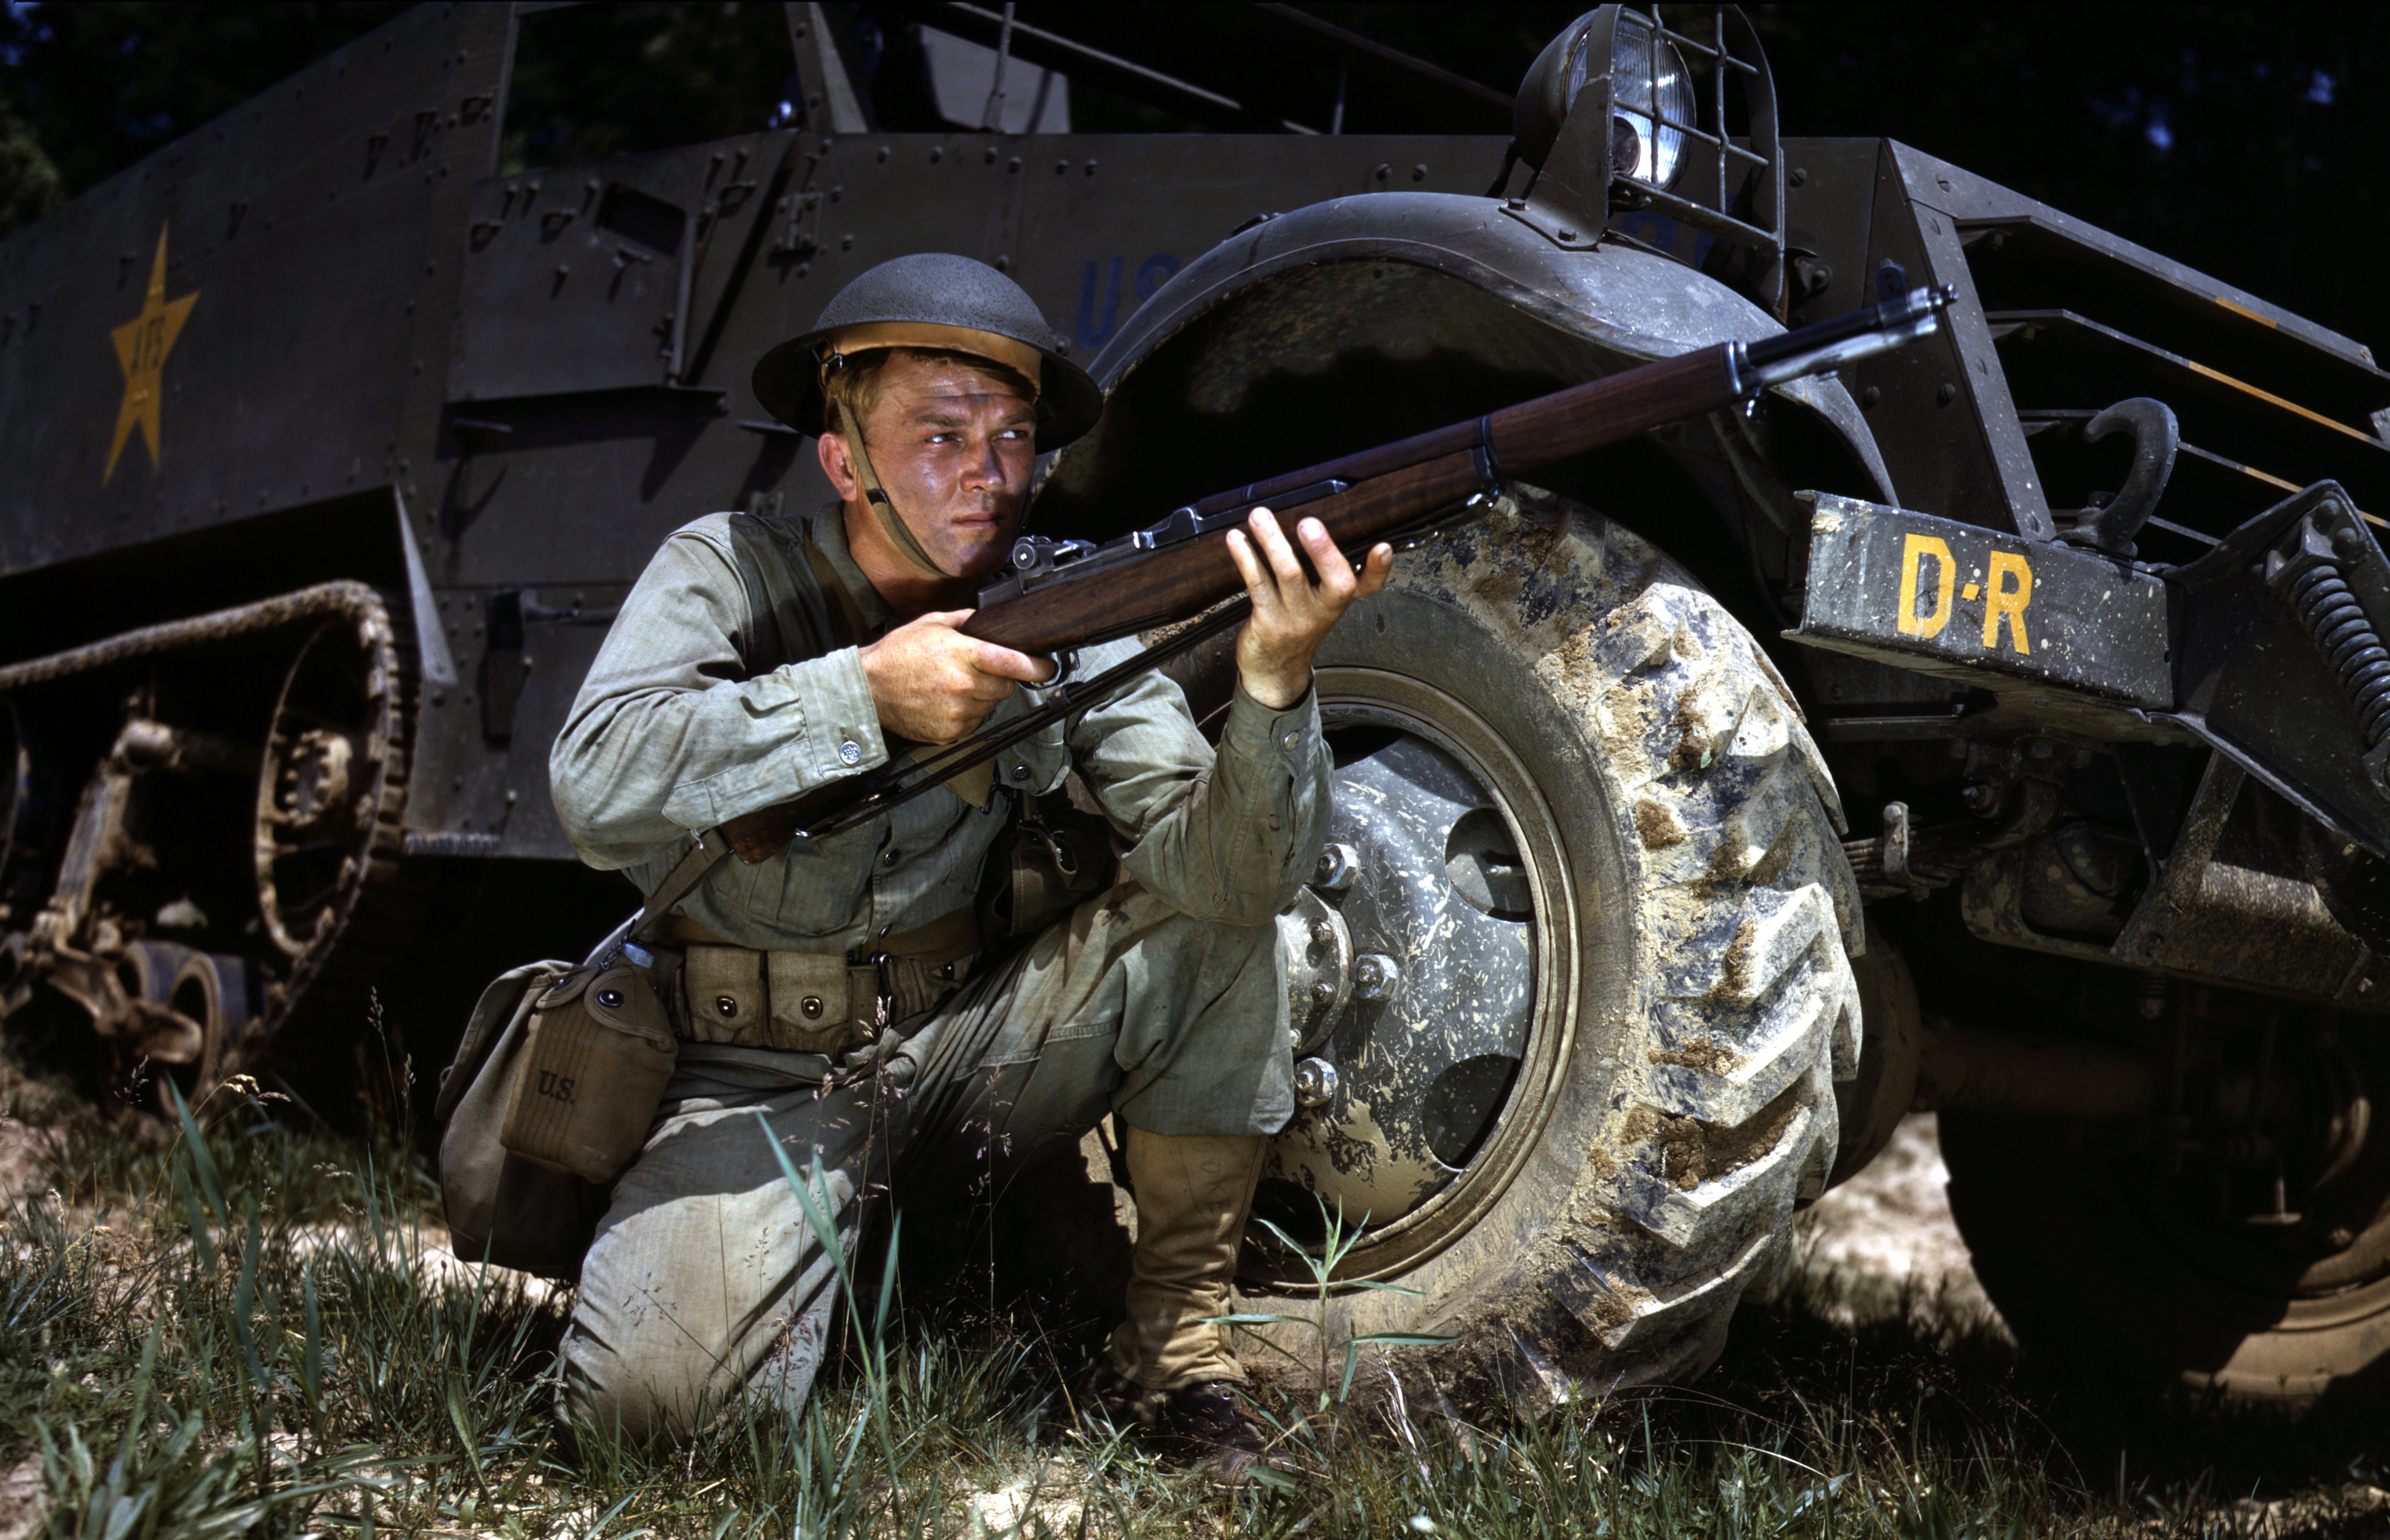 U.S. Army infantryman wearing Brodie helmet, 1942 (just before it was replaced with the M1)